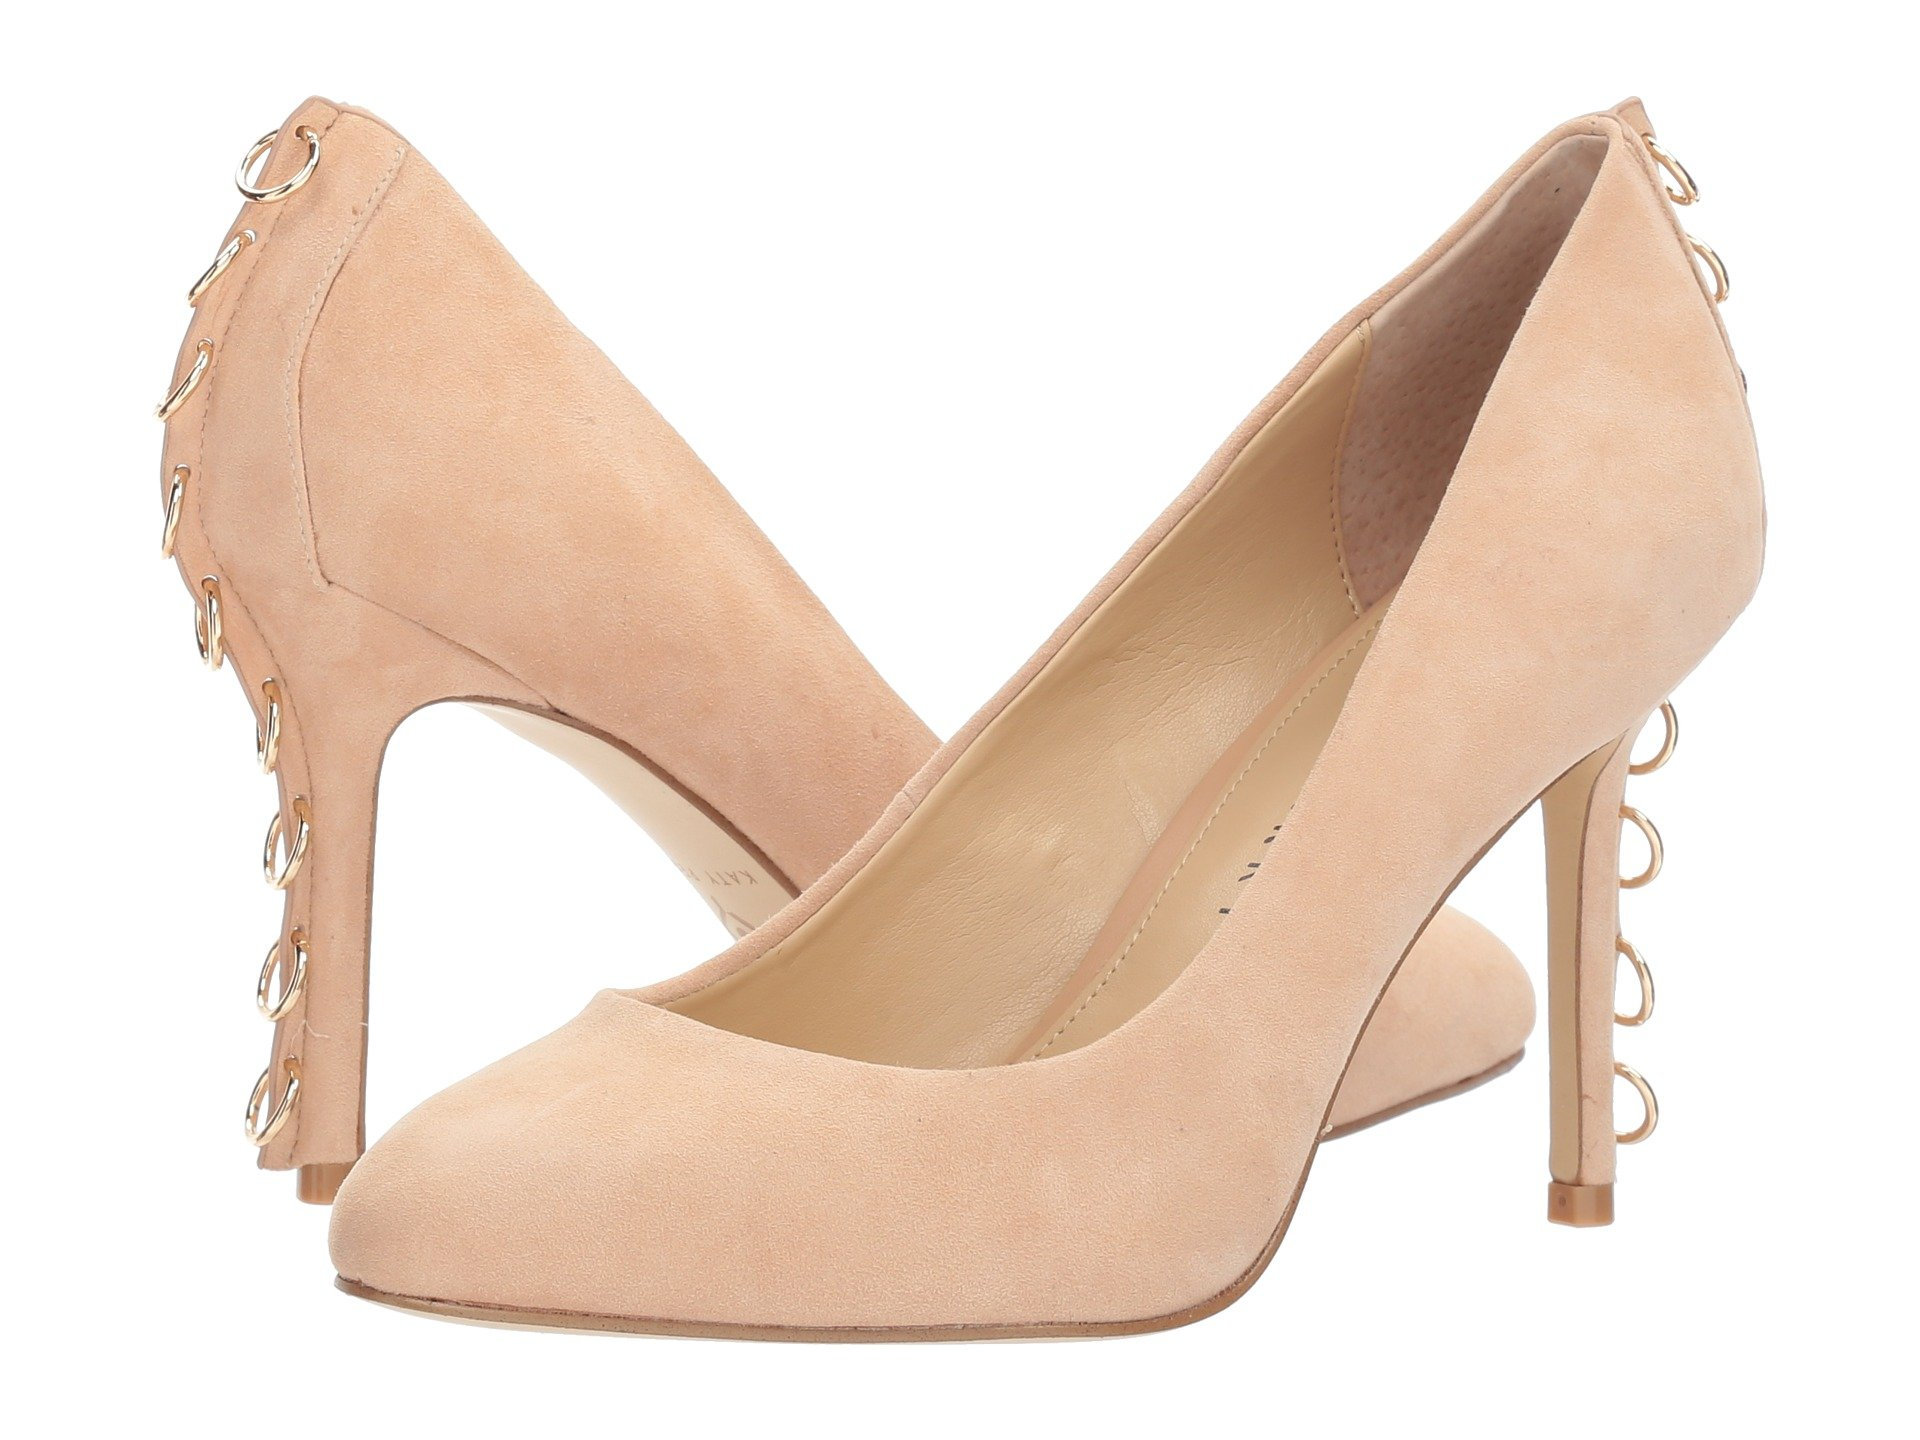 The Chrissie, Blush/Nude Suede/Gold Piercing